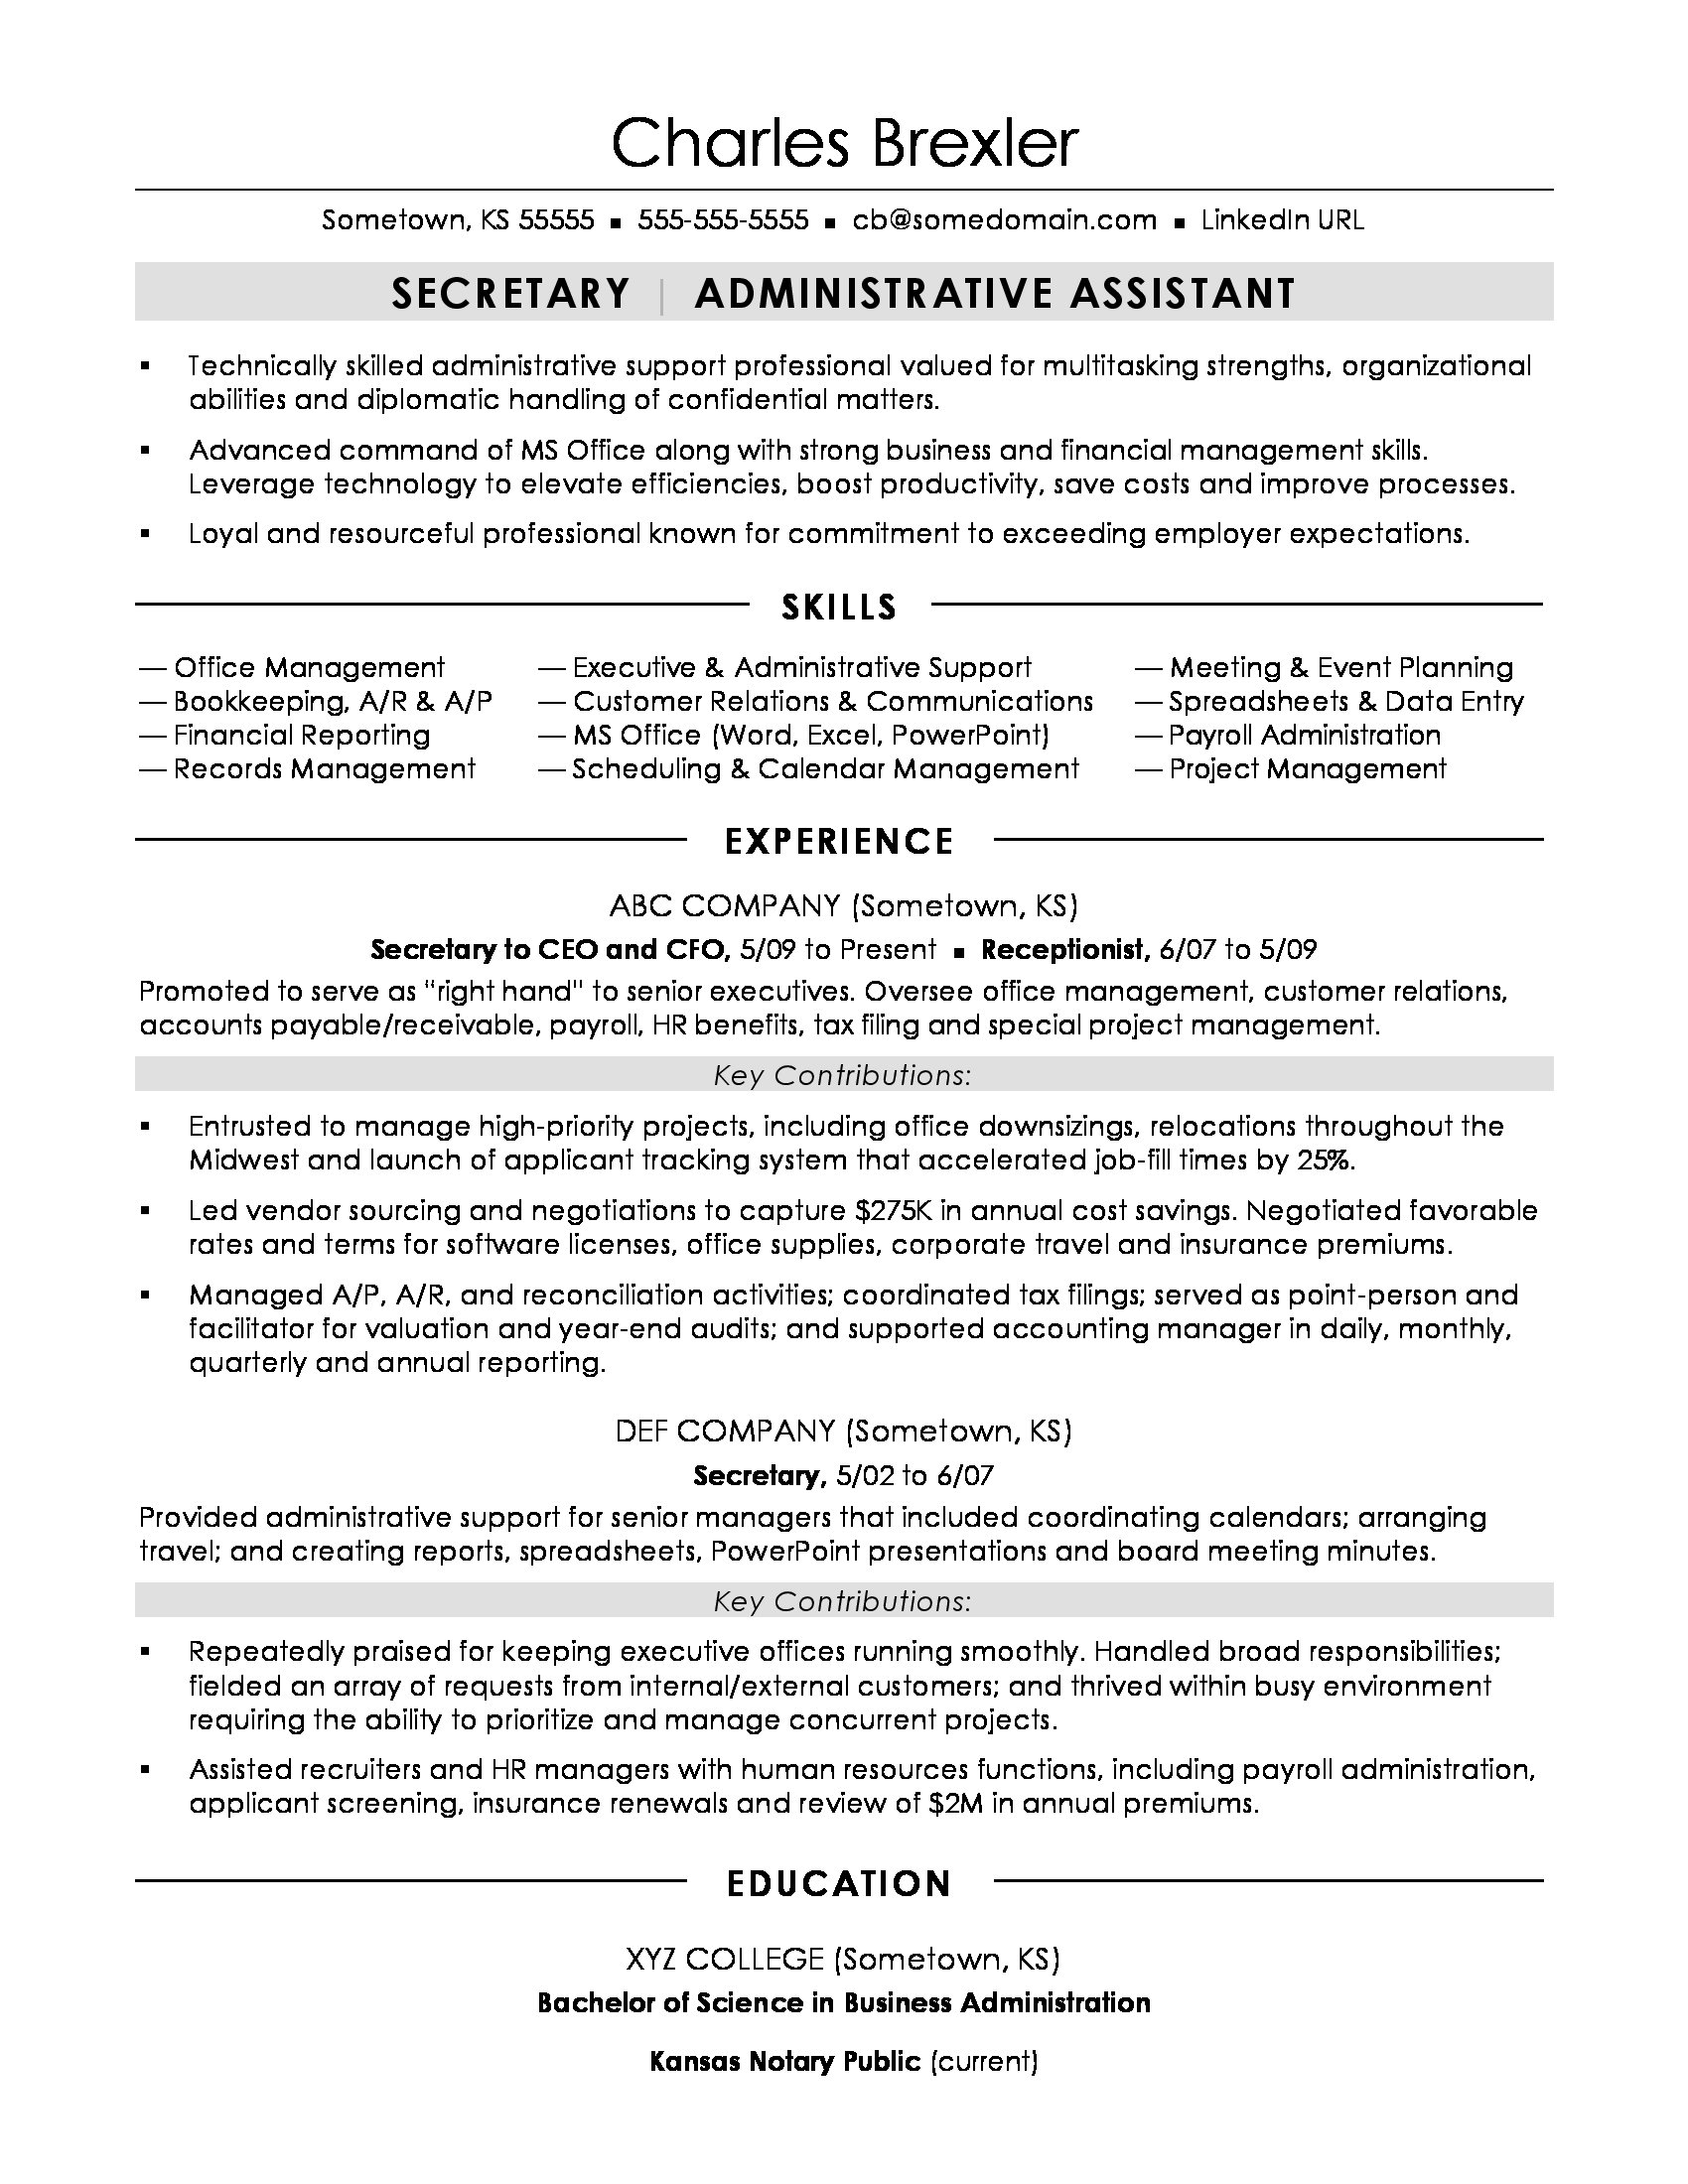 Resume Sample For Secretary Secretary Resume Sample Monster